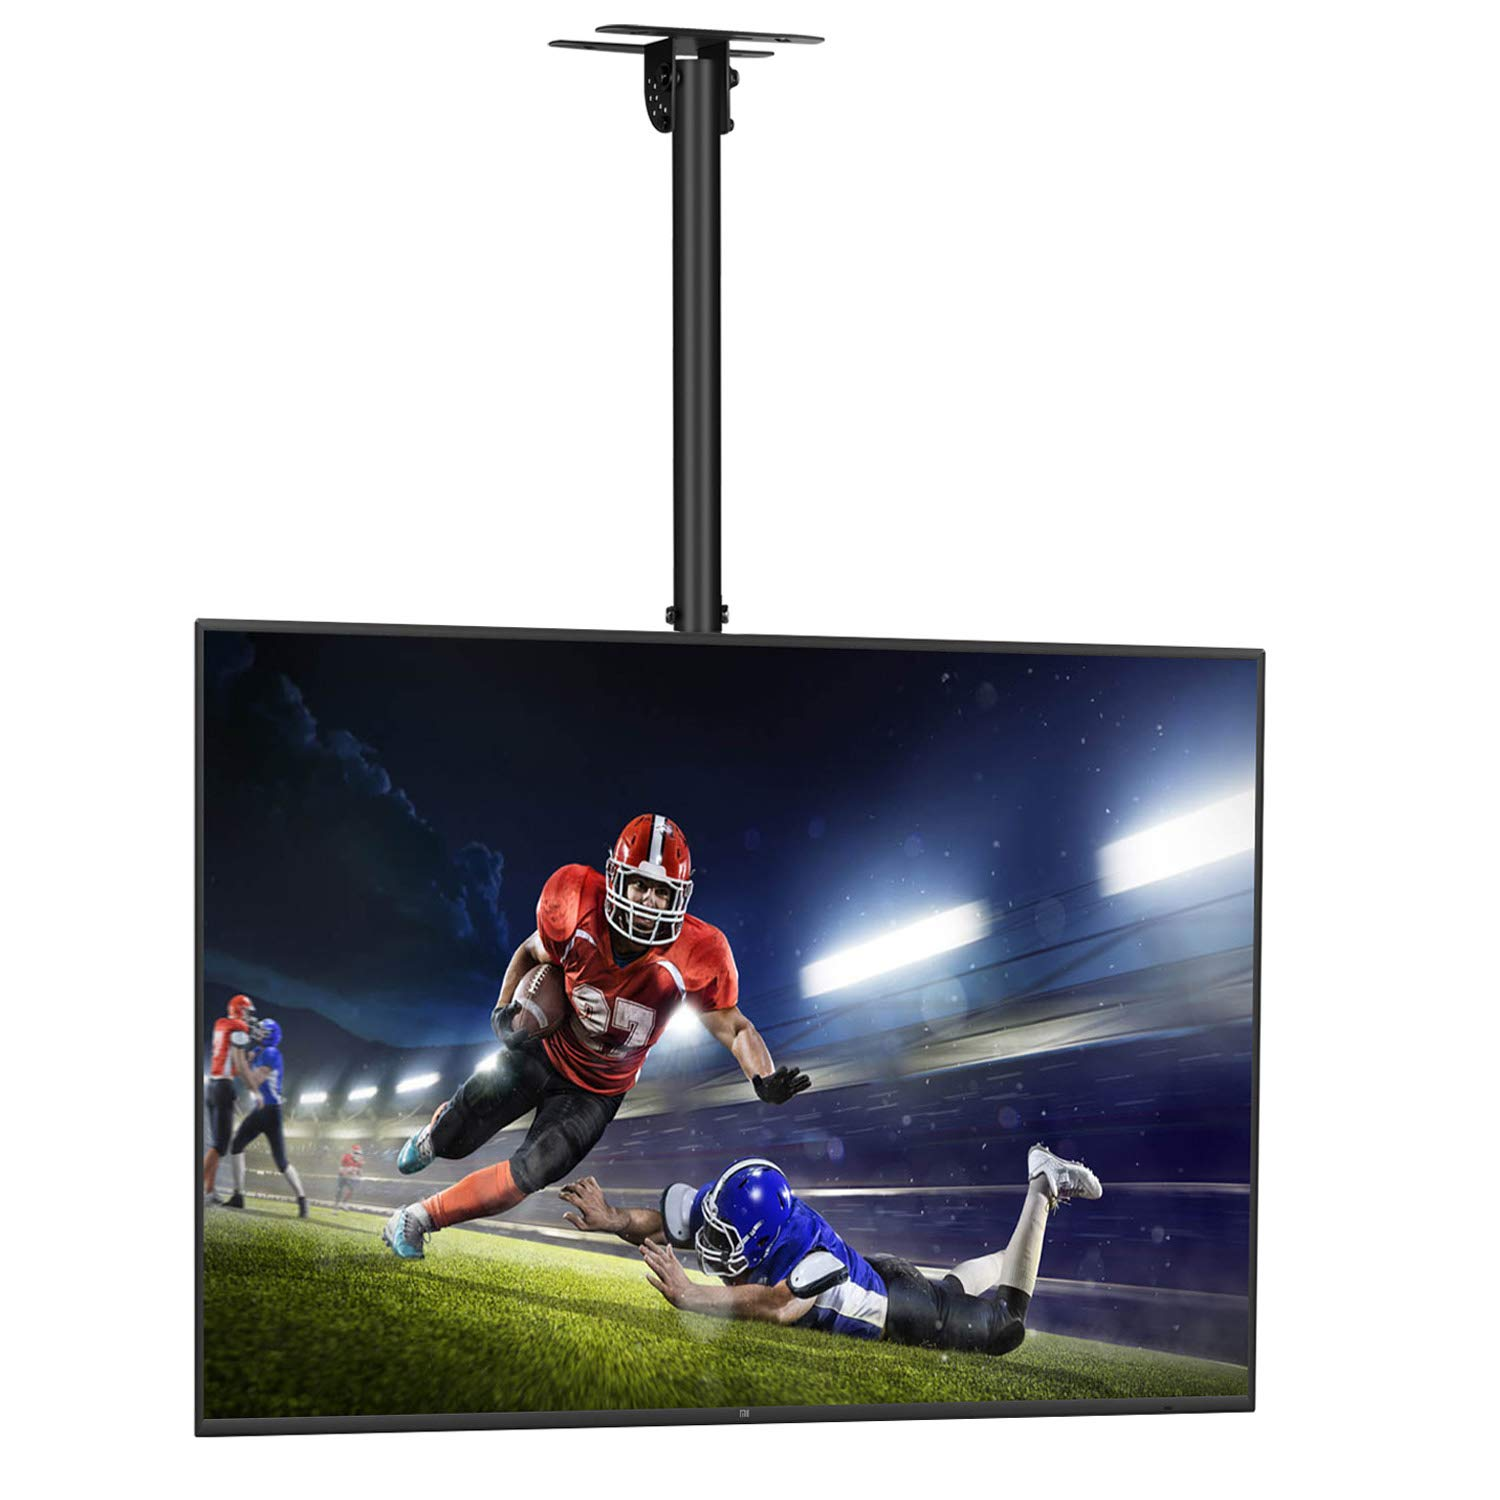 """SIMBR Ceiling TV Mount for 22-75"""" TV Adjustable 6 Heights Tilting Swiveling for LED, LCD, Plasma Flat Screen with VESA 600x400mm and 50kg/110lbs"""